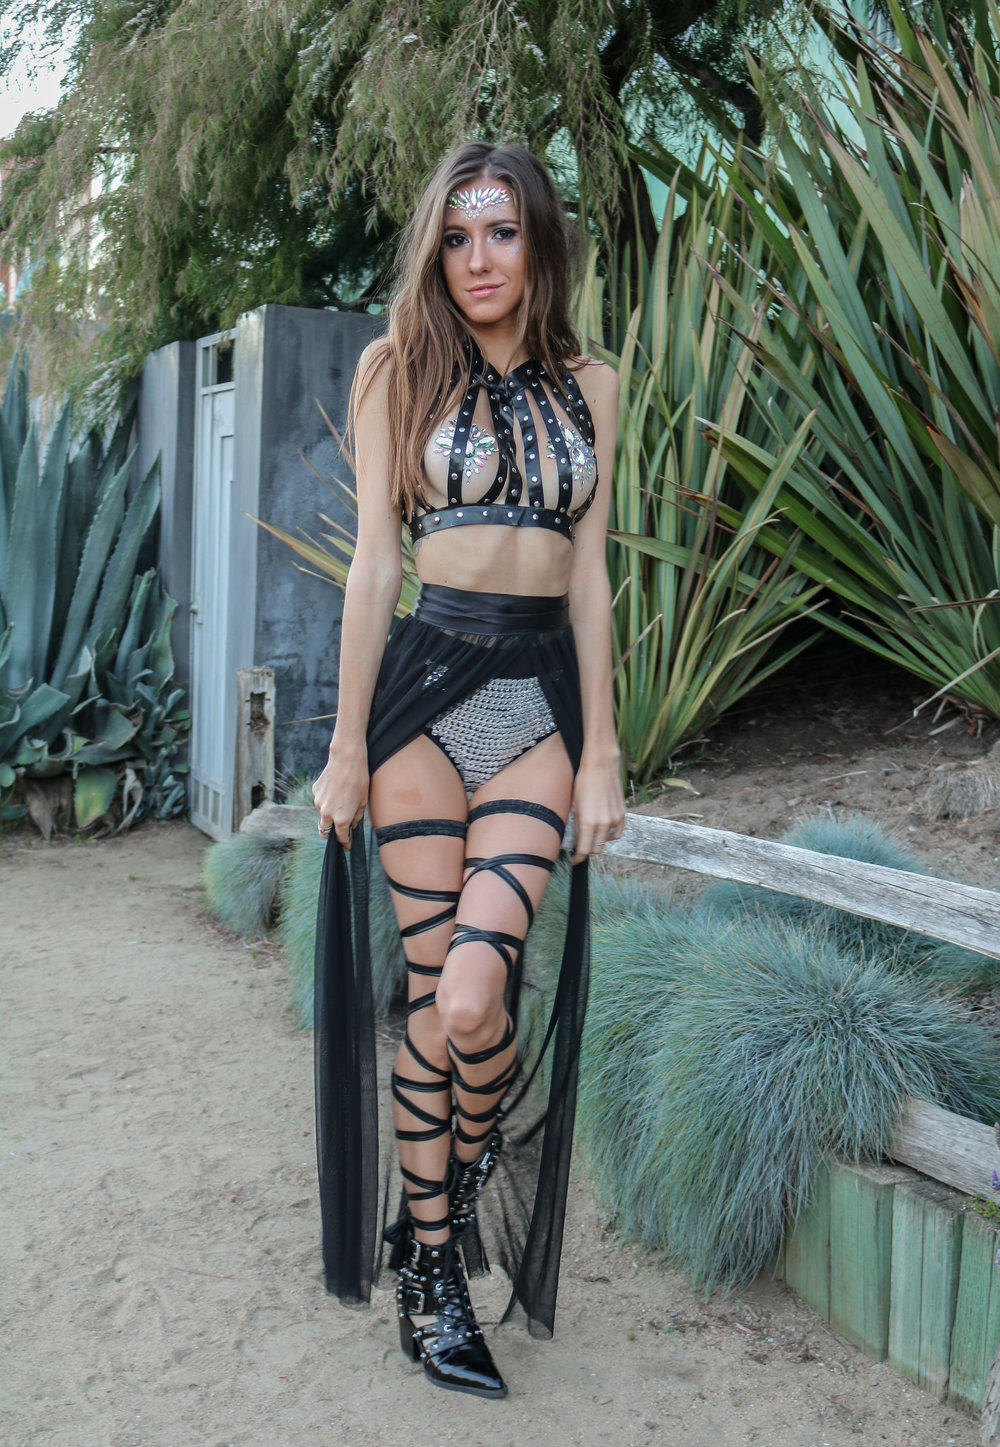 The Hungarian Brunette EDC Meets Coachella festival outfit with Iheartraves, leather harness, bejewelled booty shorts, leg wraps